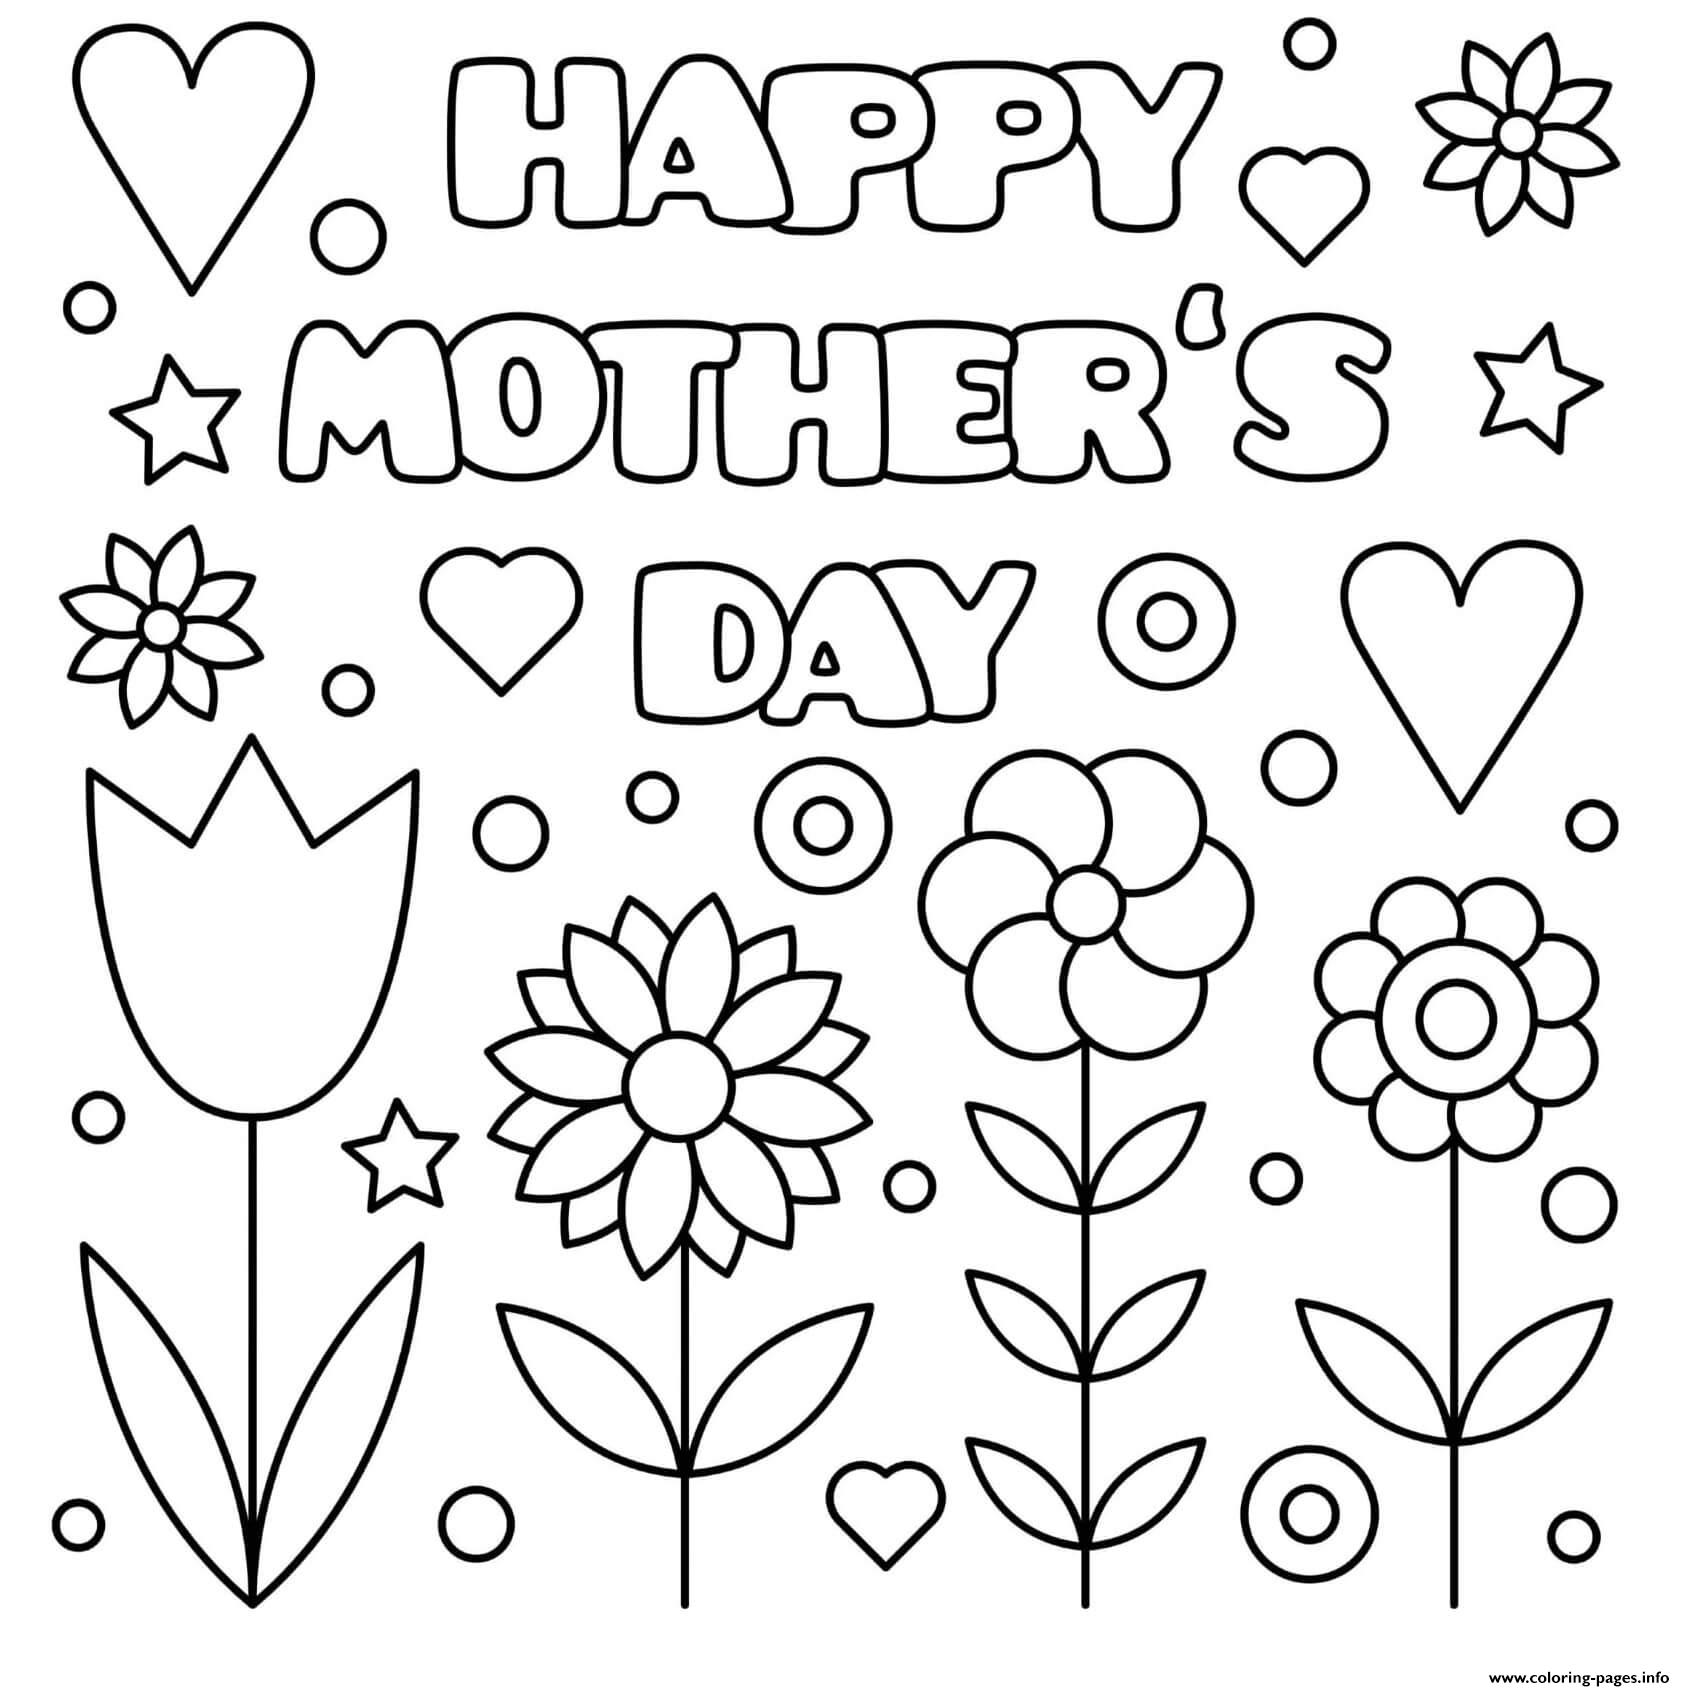 Mothers Day Happy Tulips Flowers Hearts Sign Coloring Pages Printable